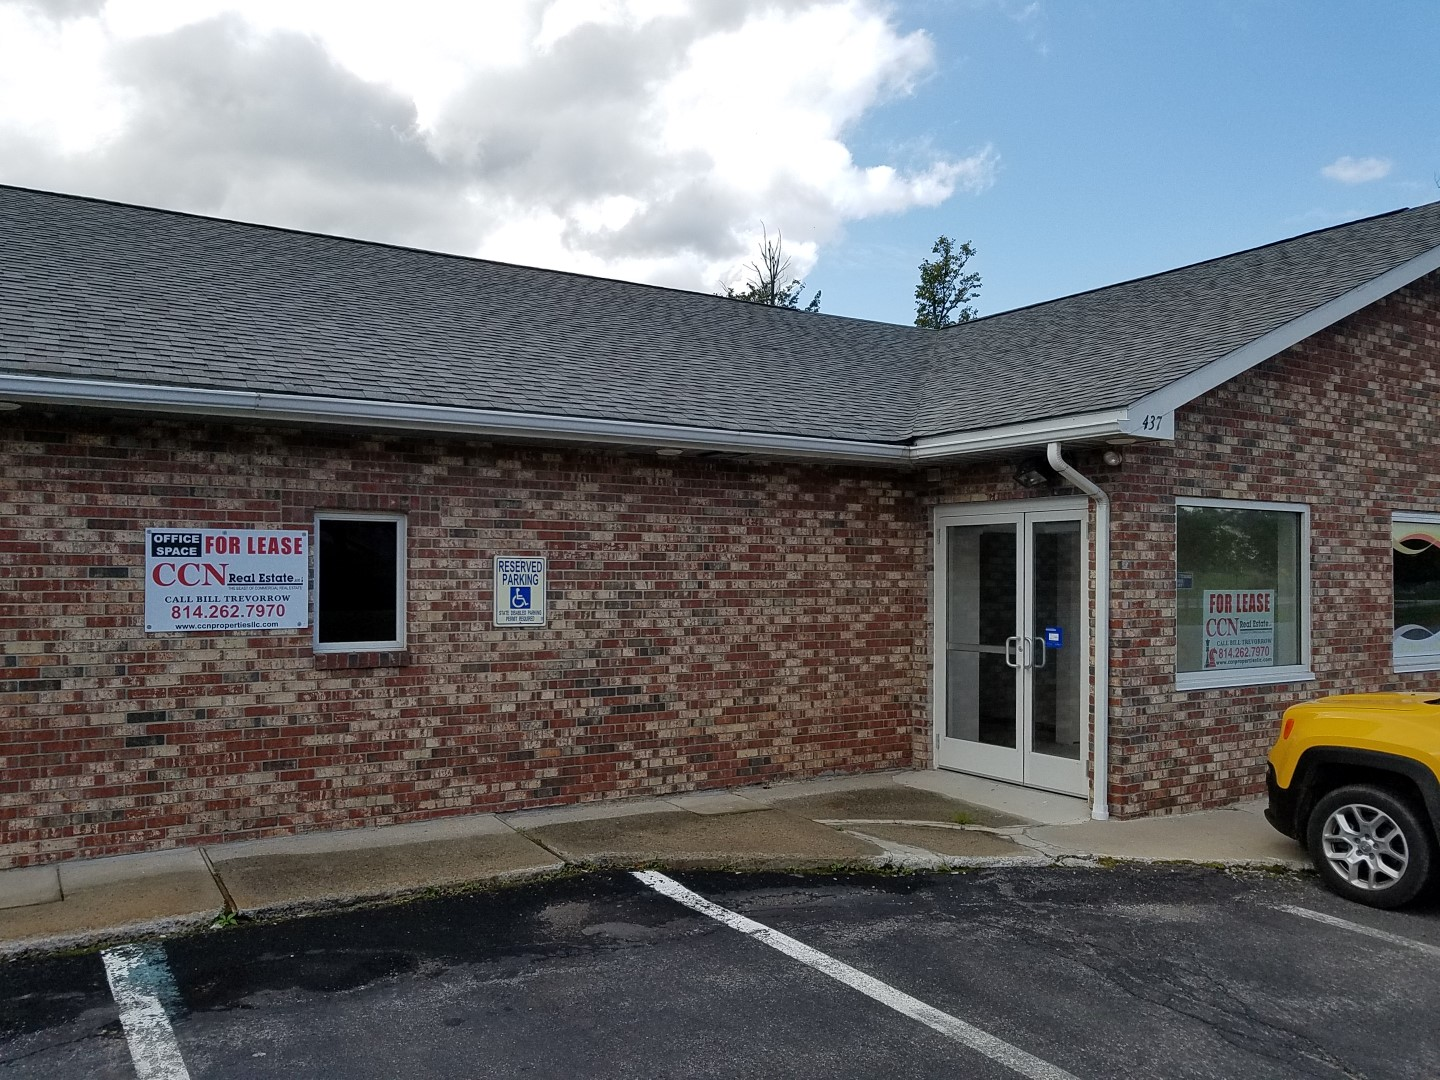 437 S Center Ave. Ebensburg 15931 - RECENTLY RENOVATED! - For Lease $1,170 + Electric